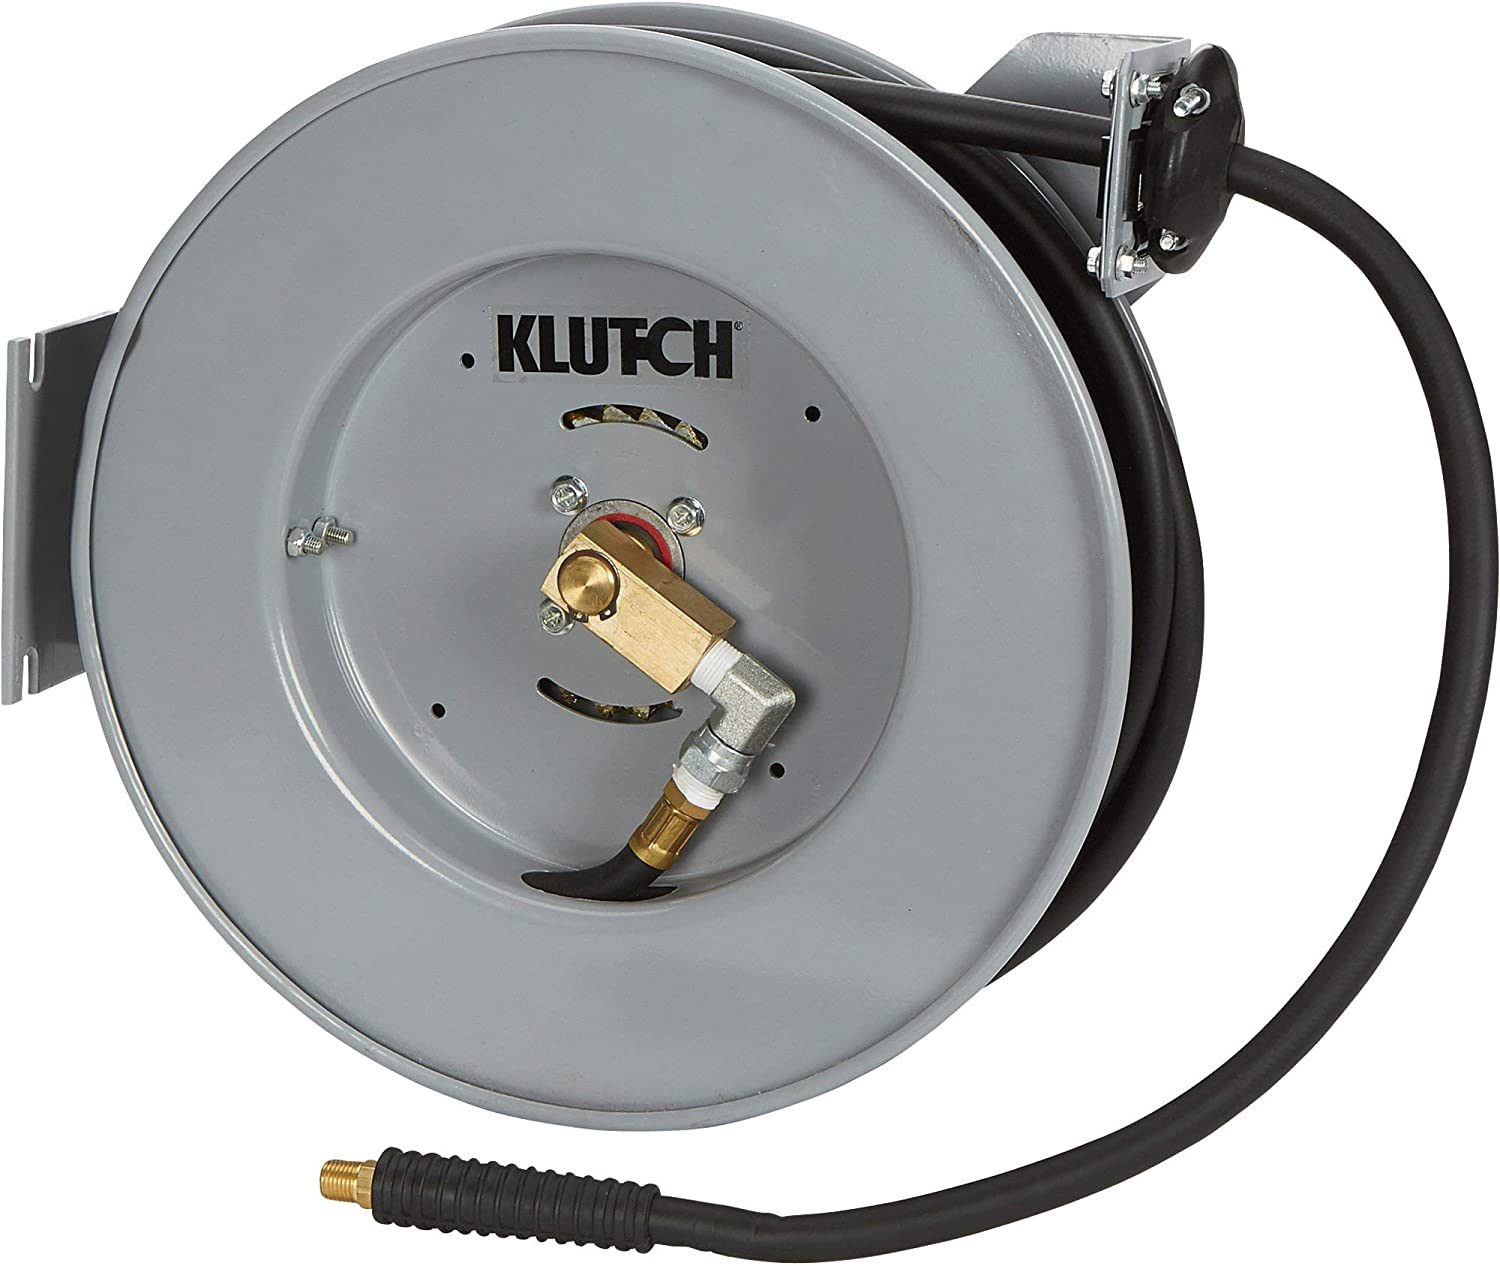 Max Klutch Compact Auto Rewind Air Hose Reel x 50ft 300 PSI Hybrid Hose with 3//8in